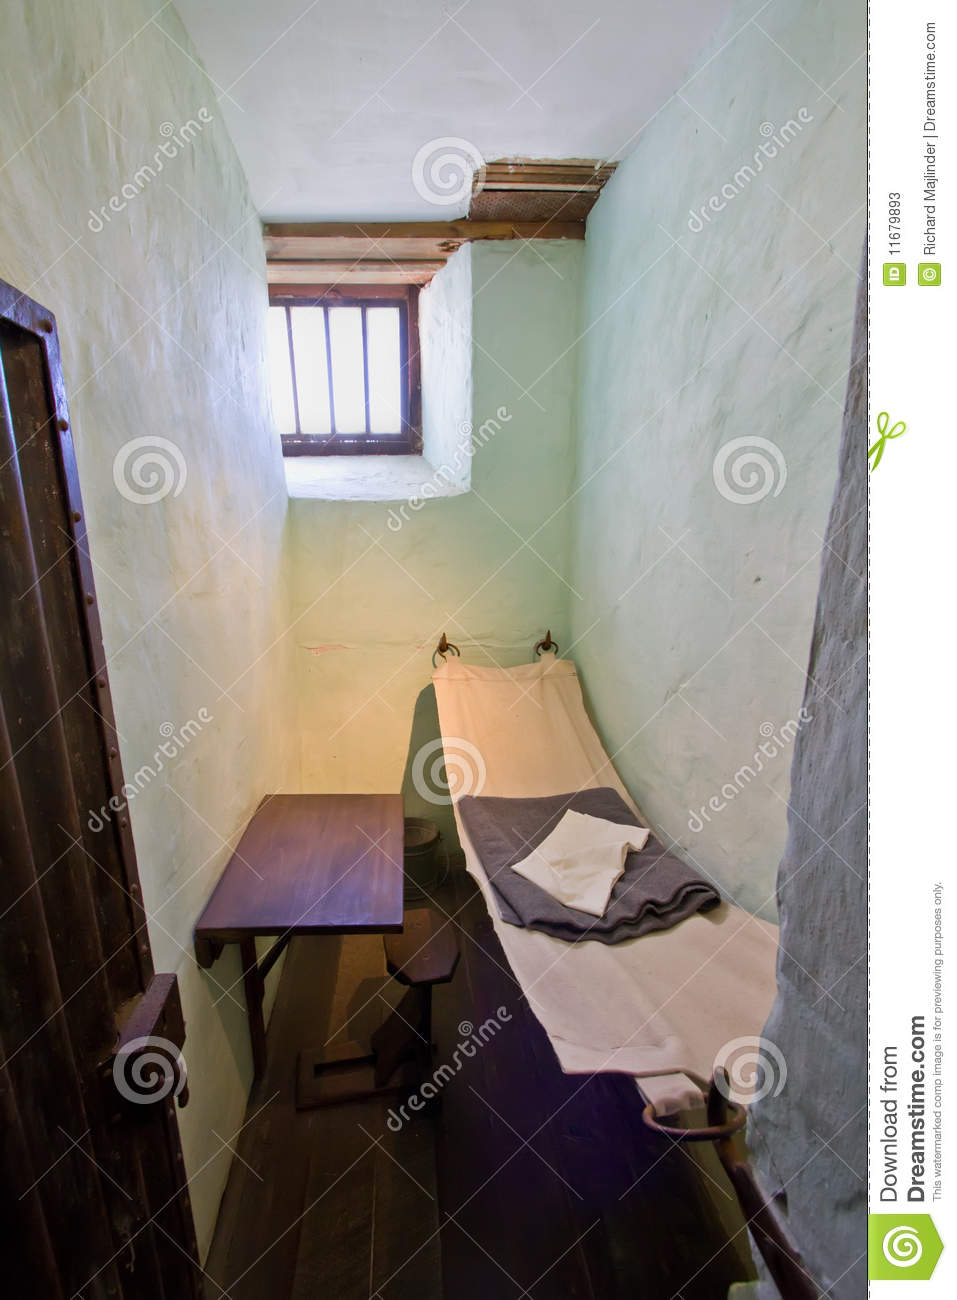 Very Small Cell In An Old Prison Stock Photos Image